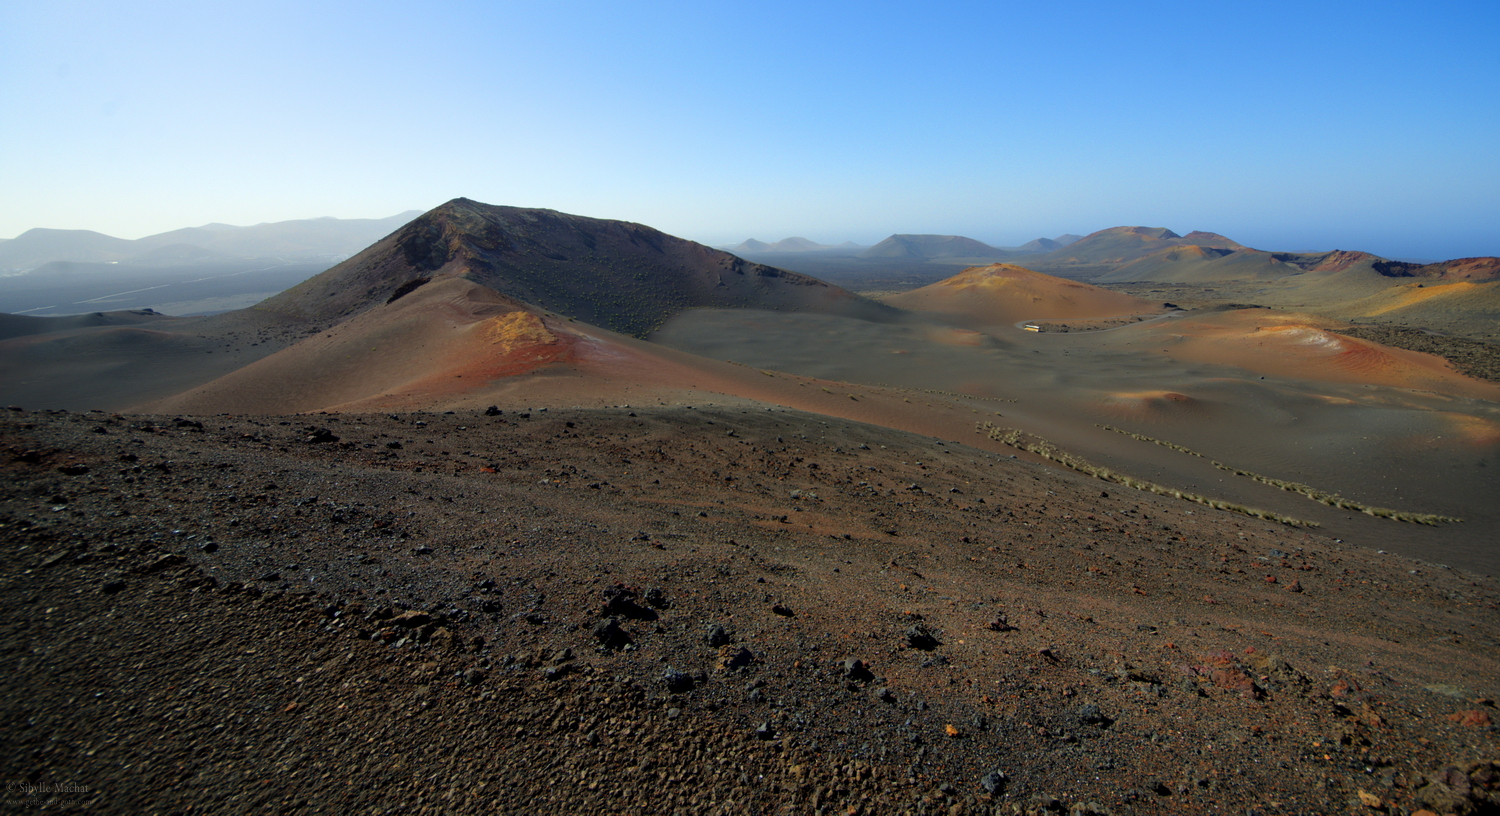 The Colors of Timanfaya